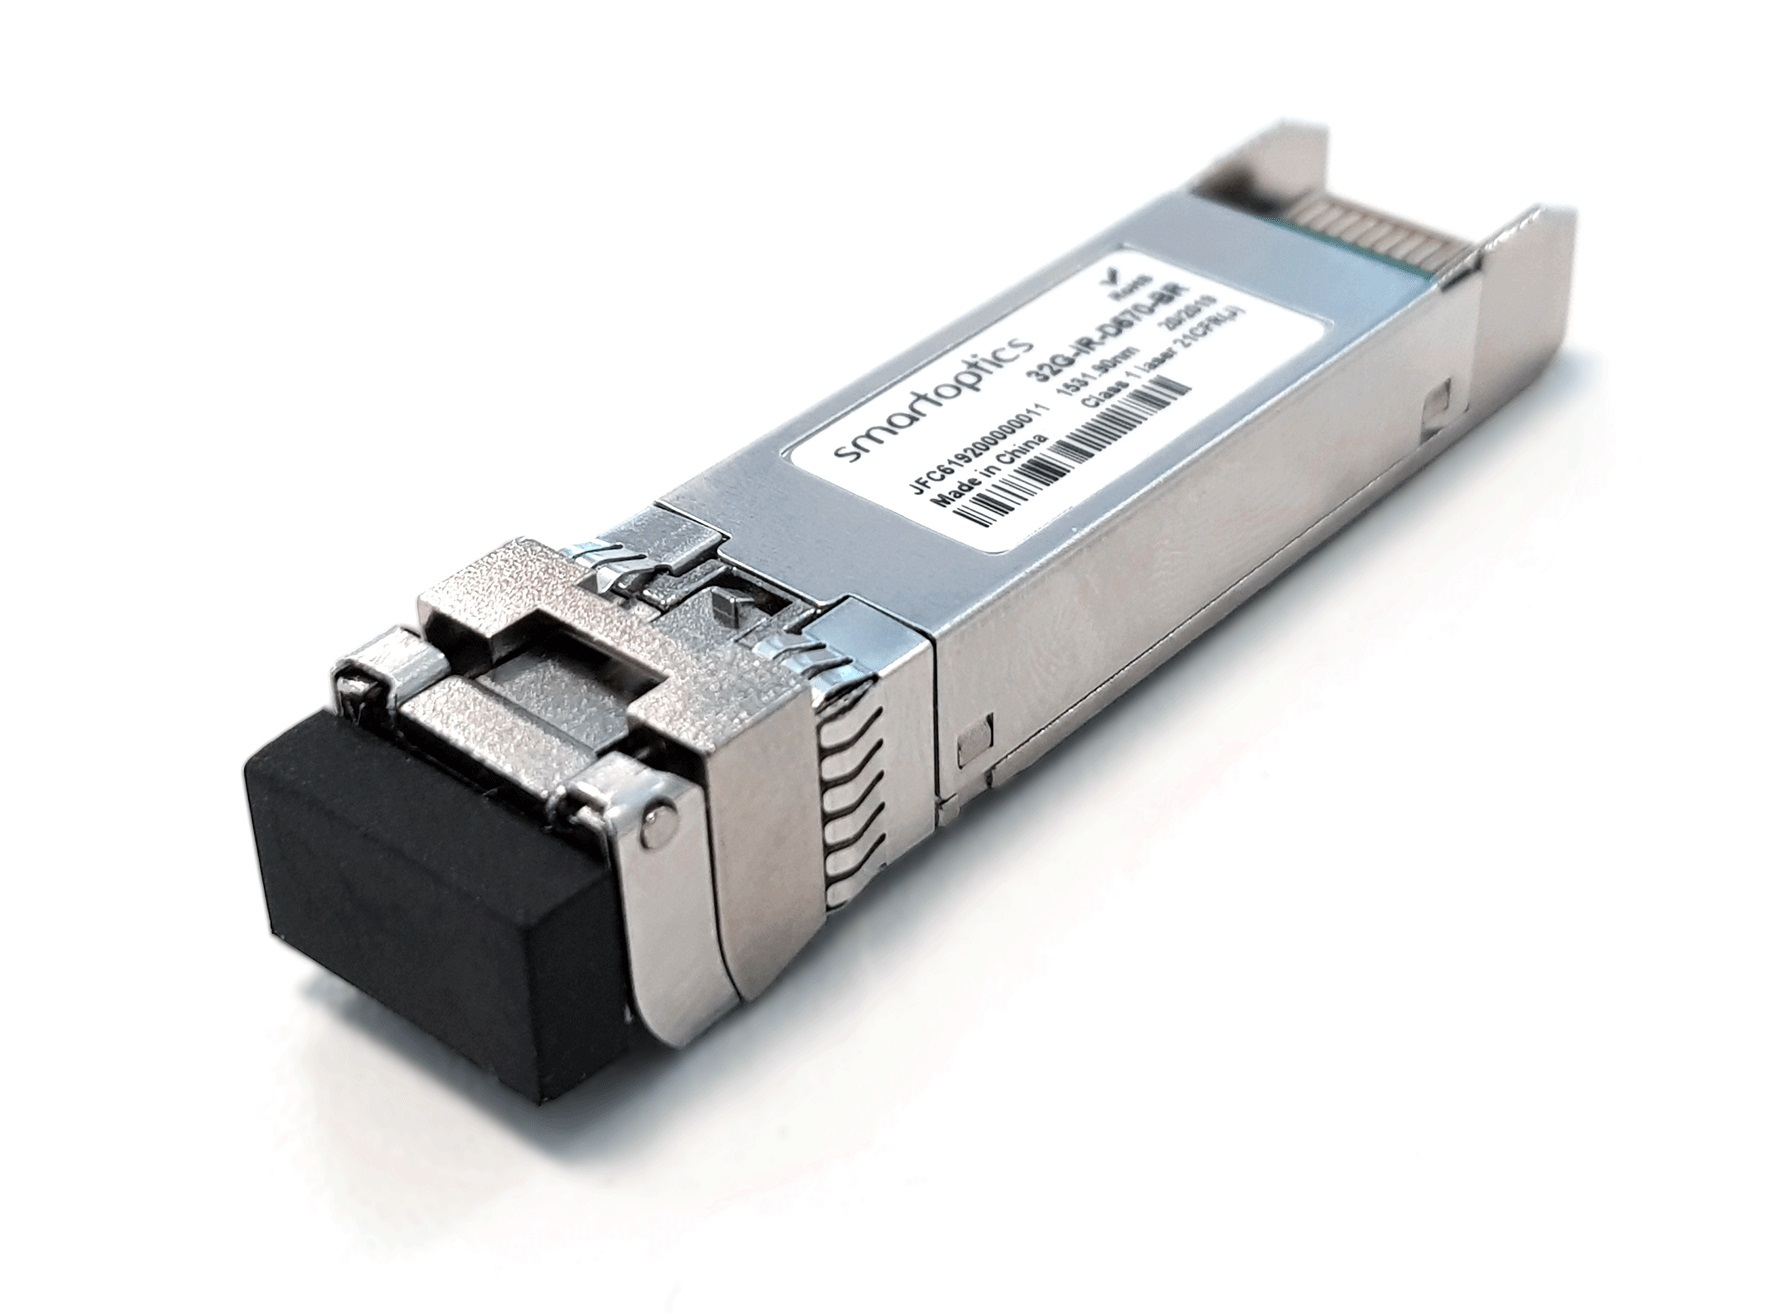 32G Fibre Channel DWDM transceiver